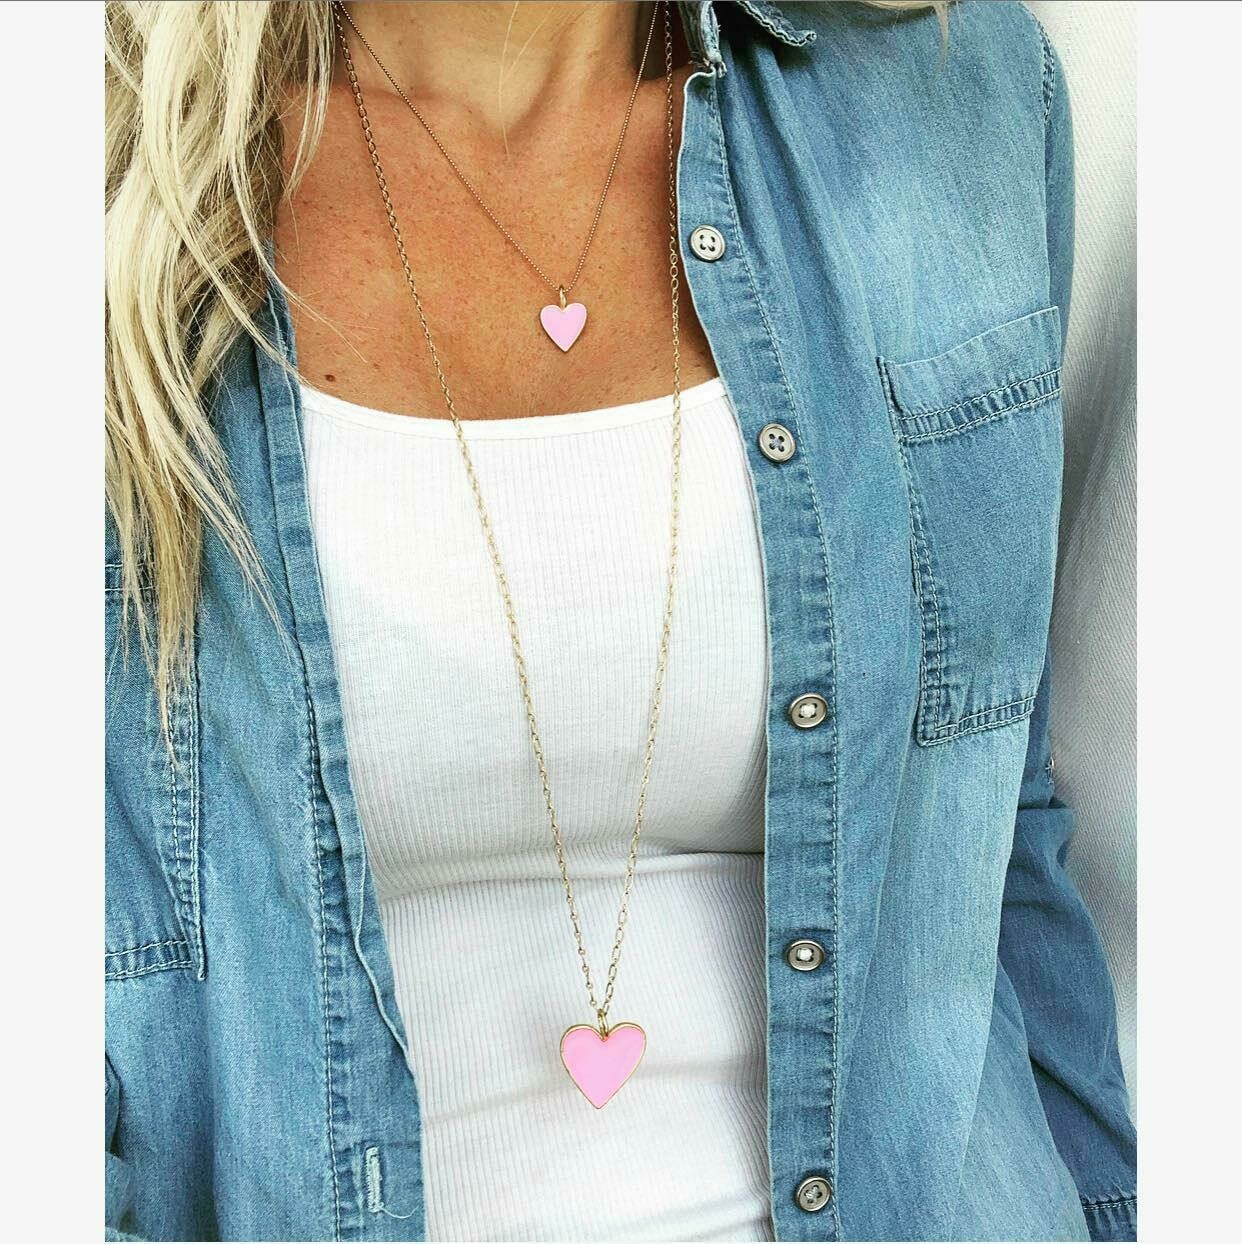 the 'show up & love' necklace - long